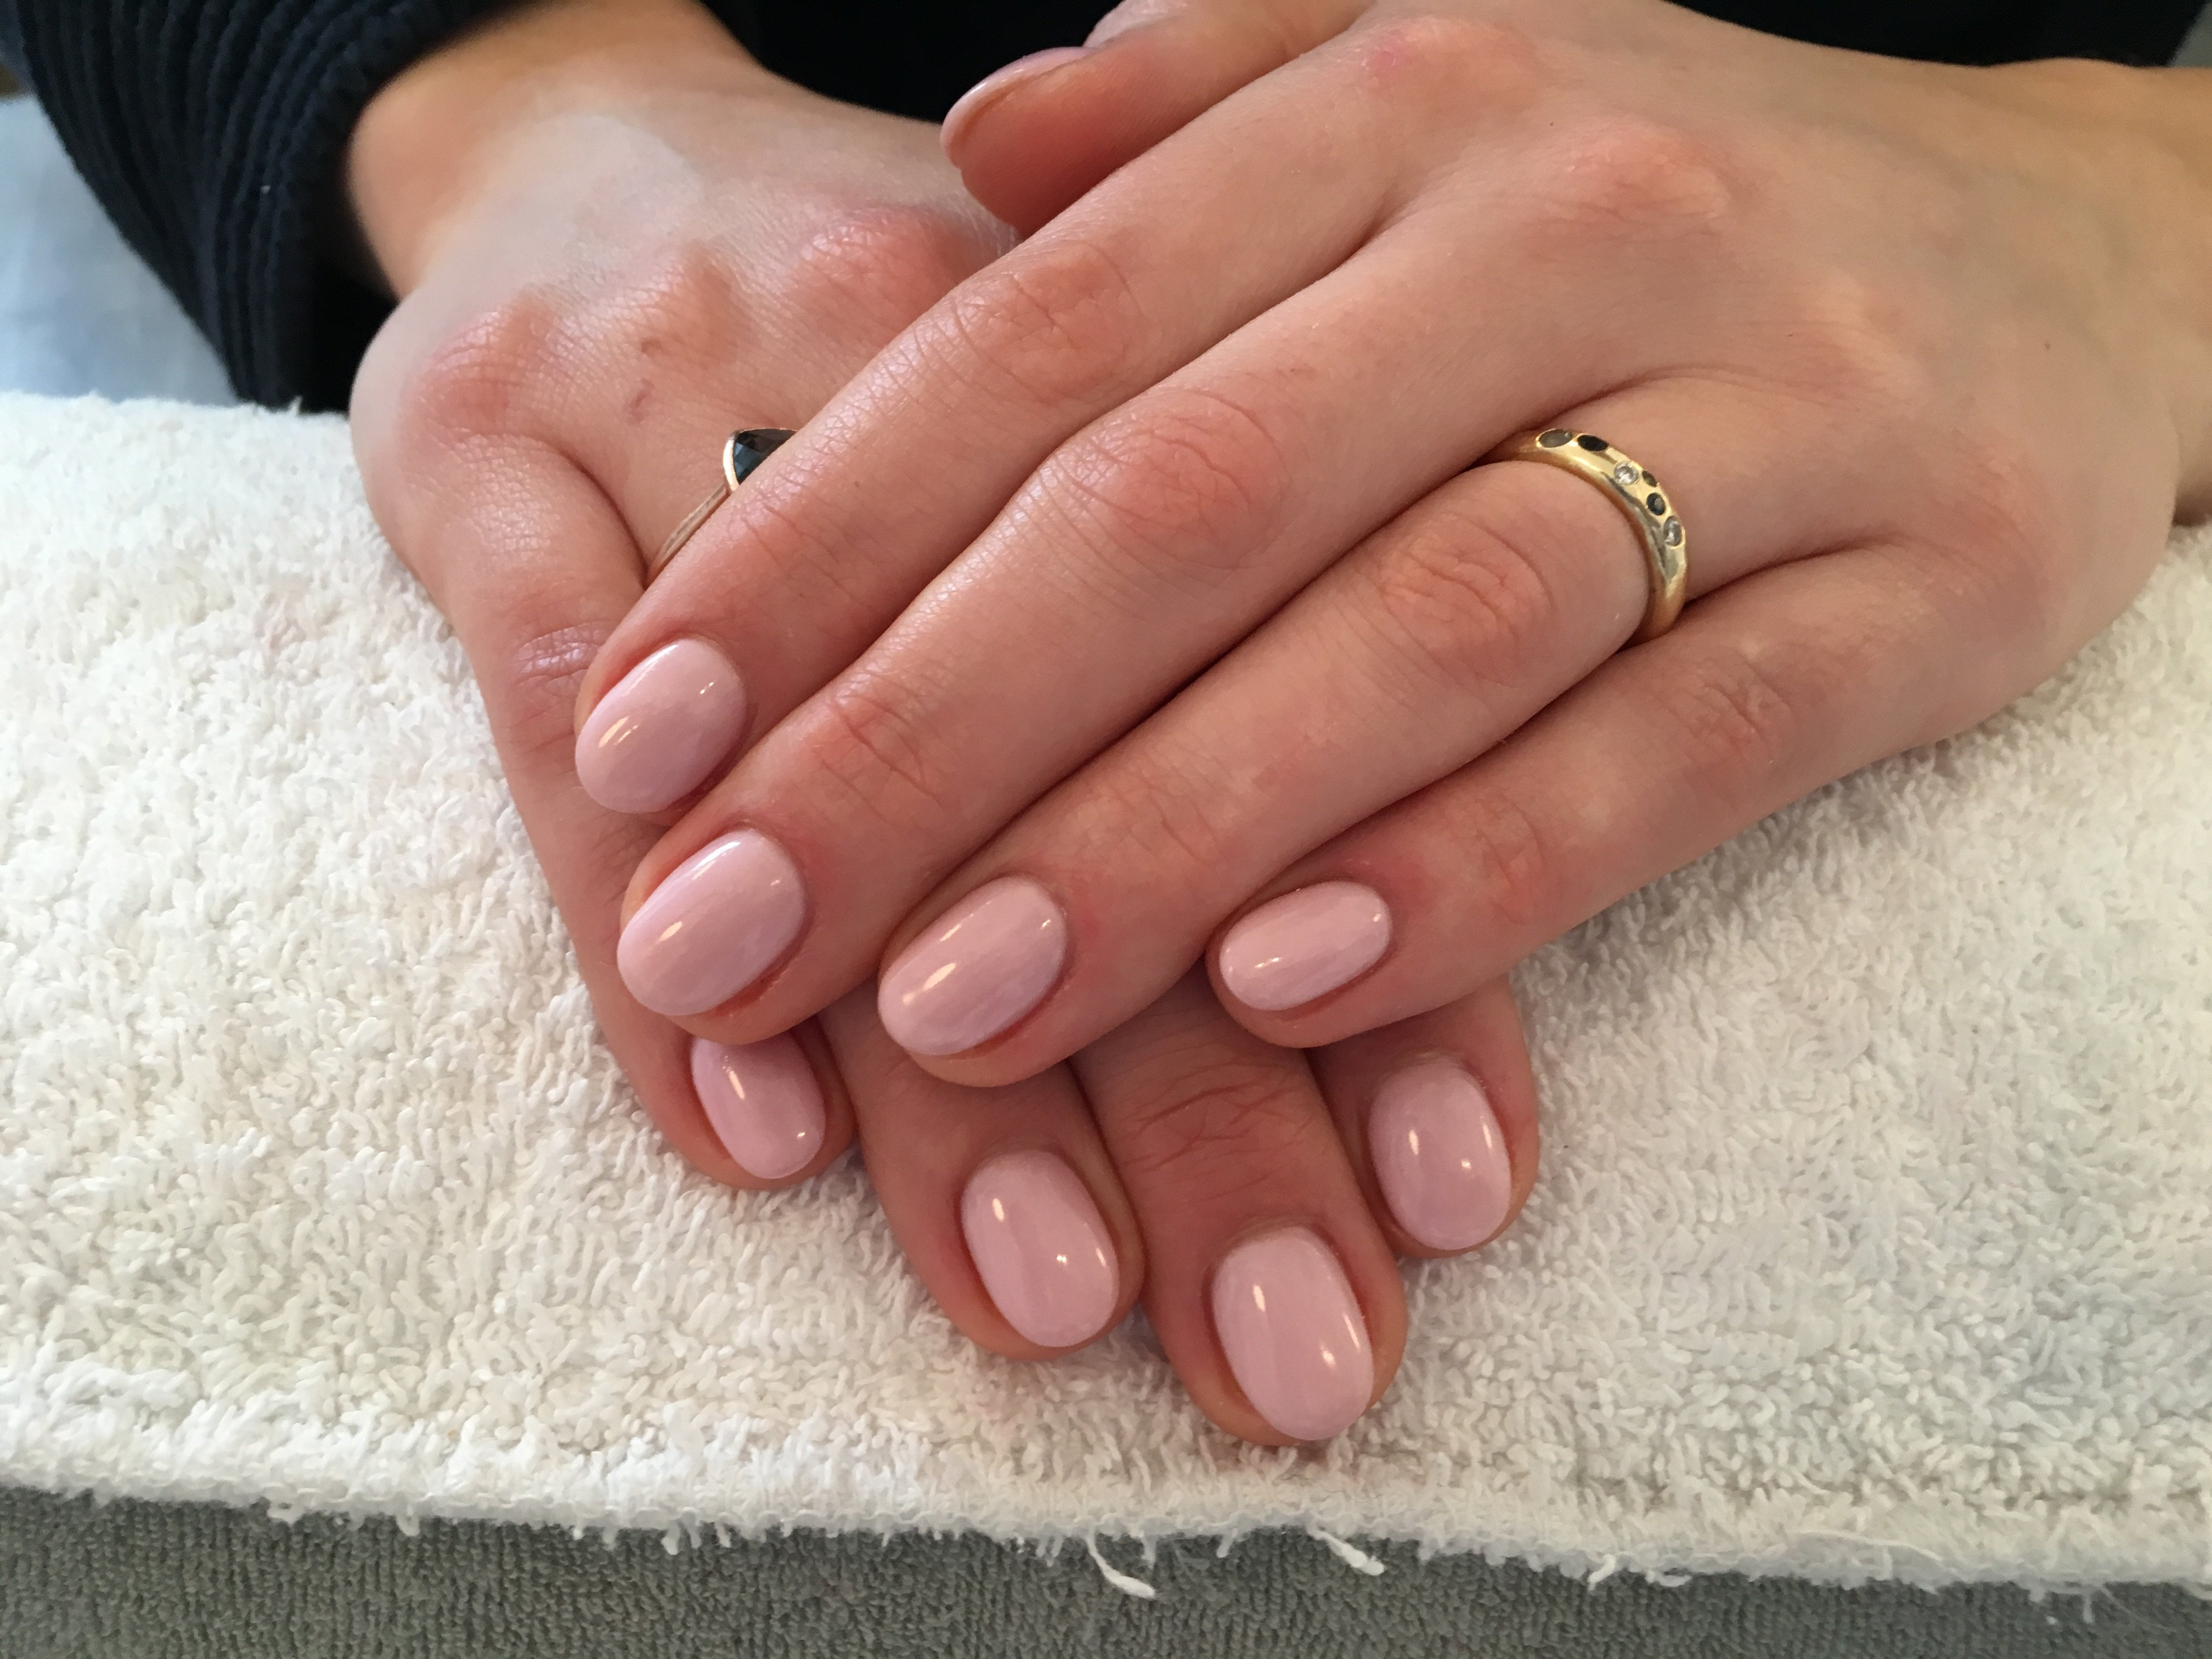 Care 4 Your Nails Beauty Salon Acryl Nagels Foto 15 Care 4 Your Nails Beauty Salon